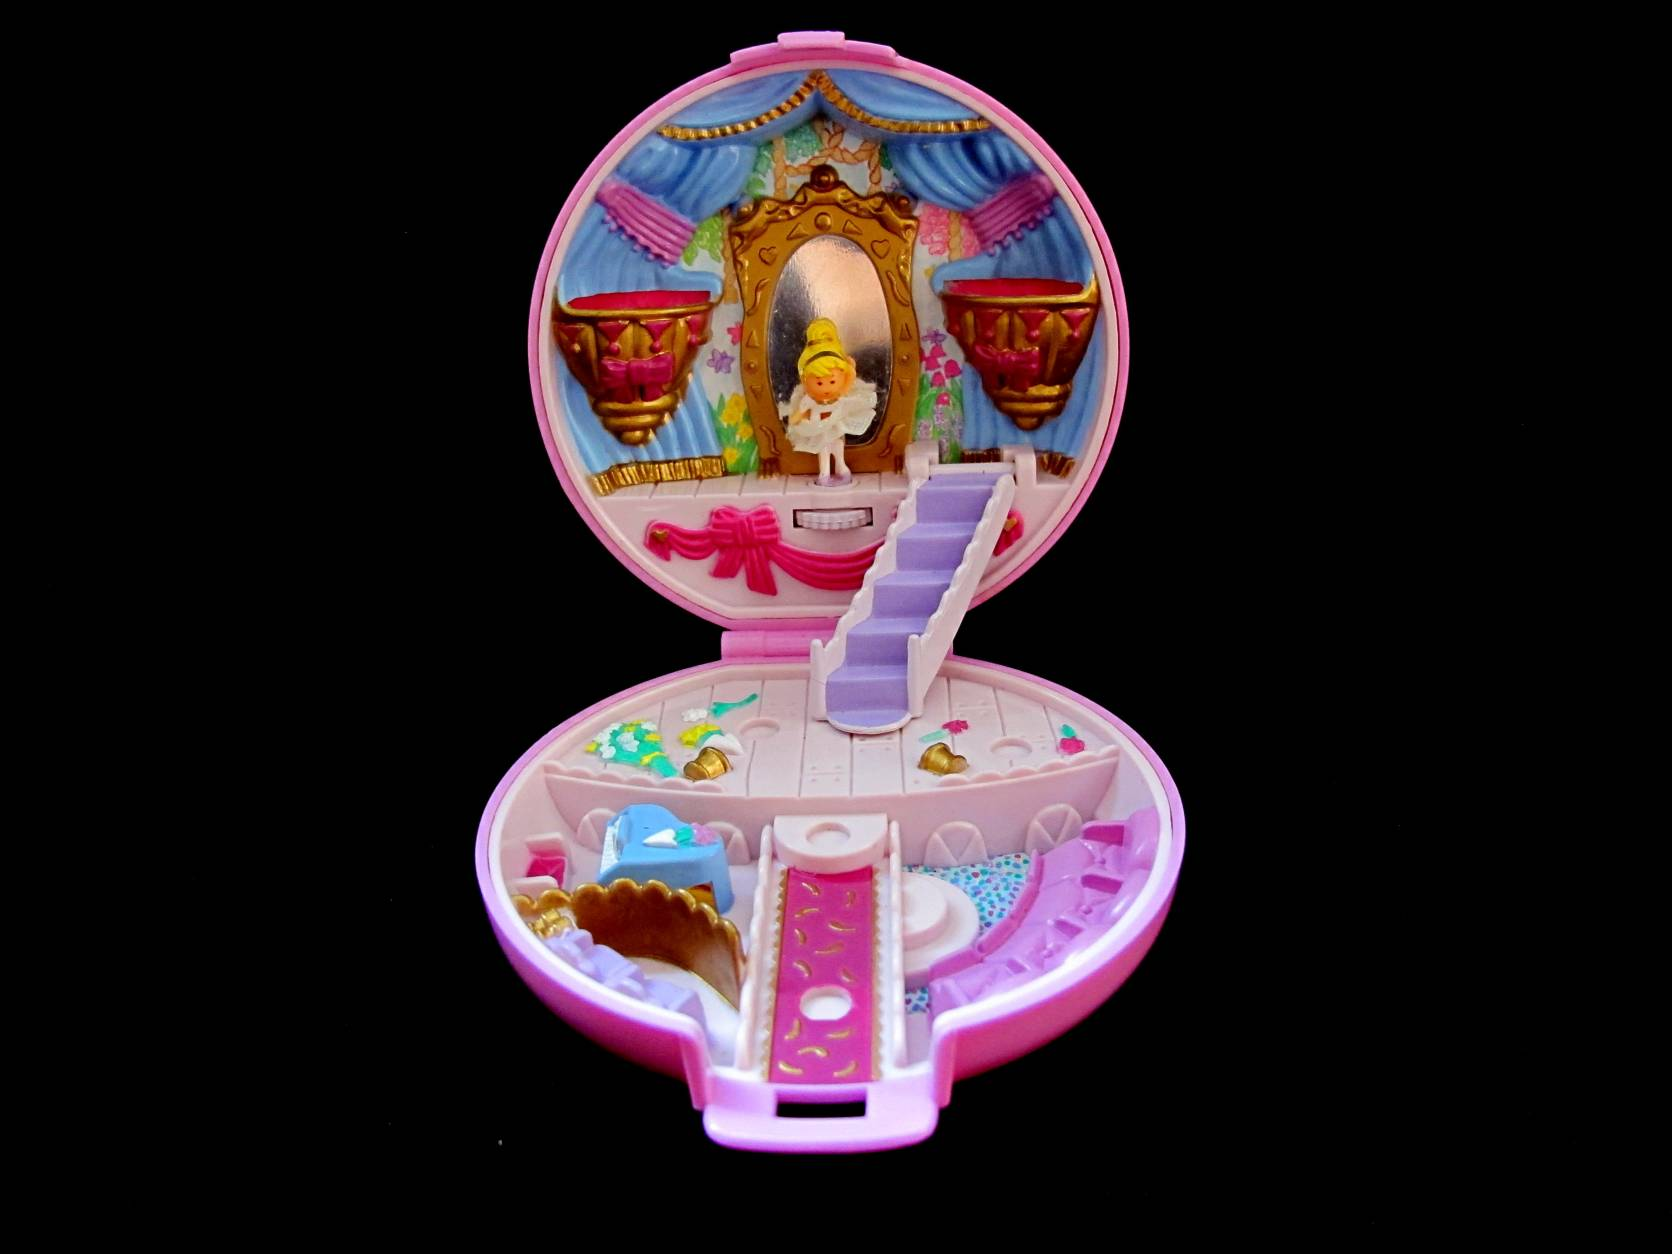 1993 Ballerina Polly Pocket 2